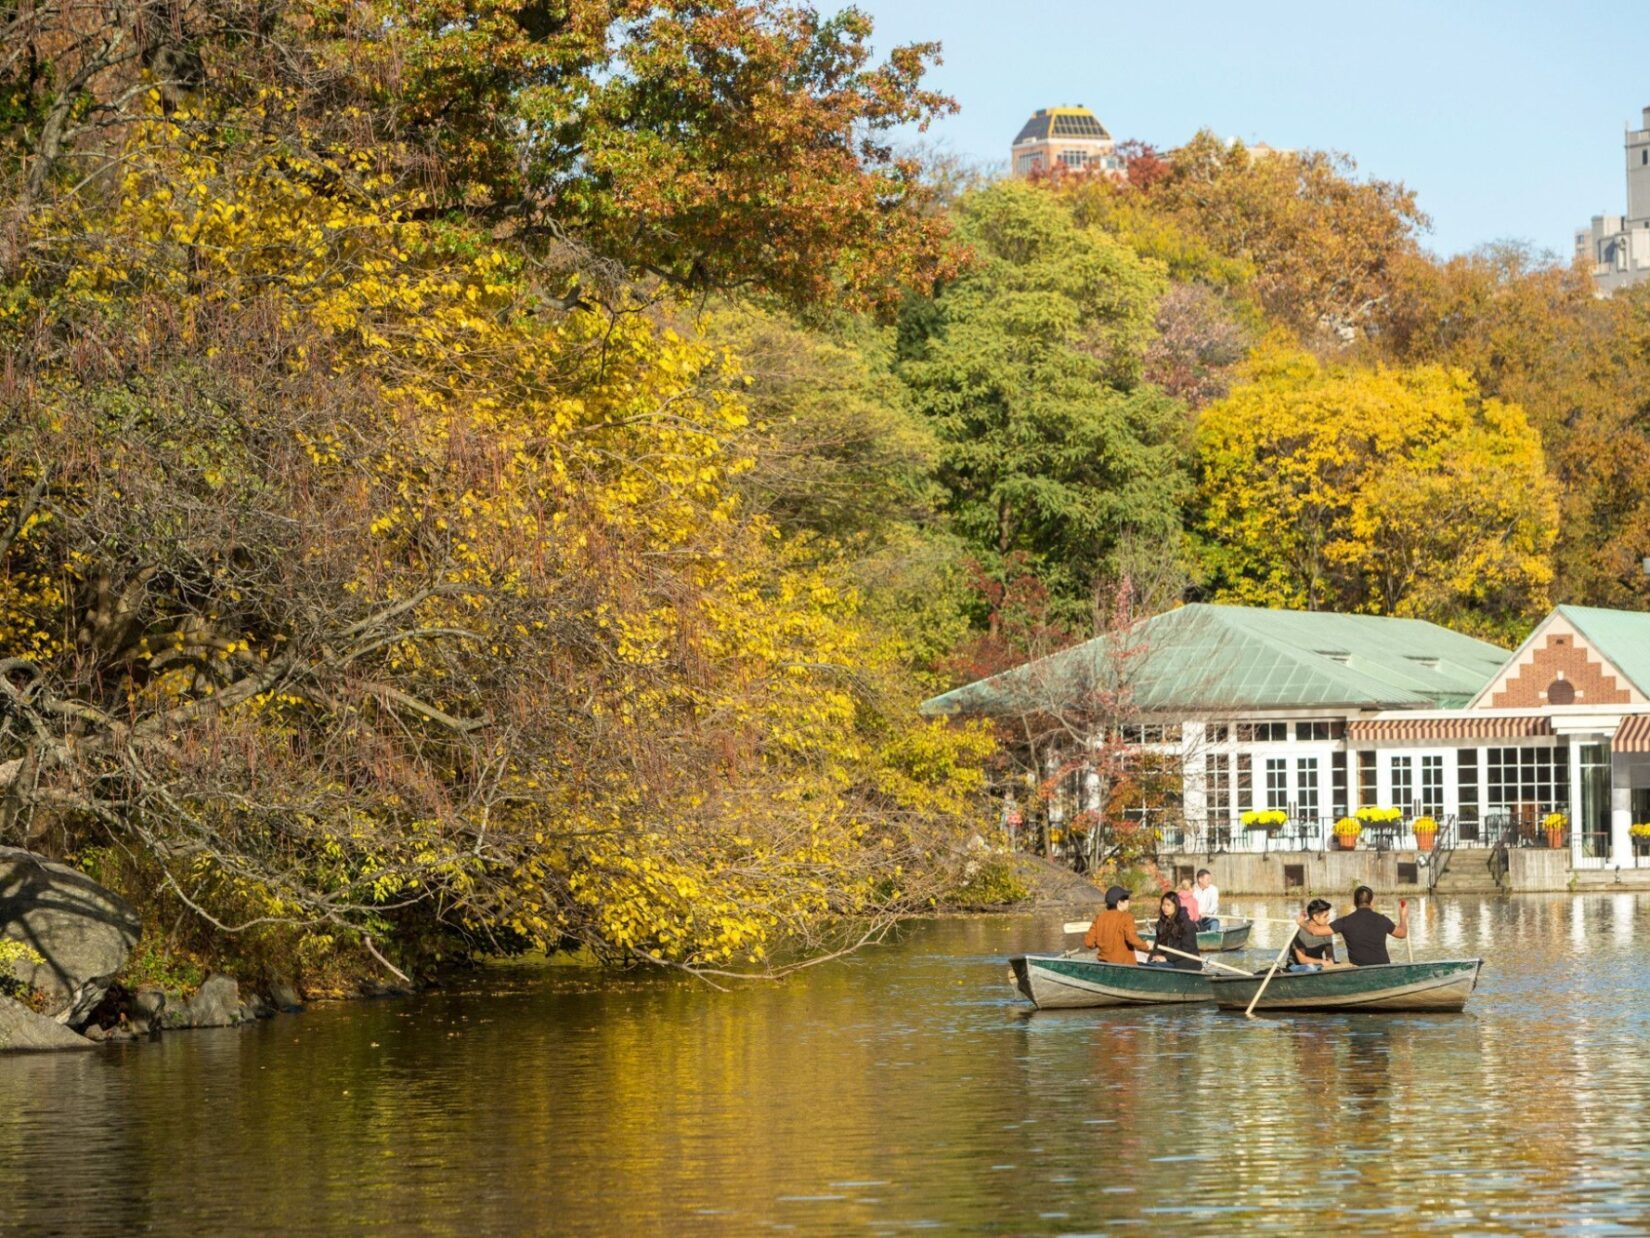 The Loeb Boathouse is seen at the far end of the Lake, behind boaters and the trees on the banks.